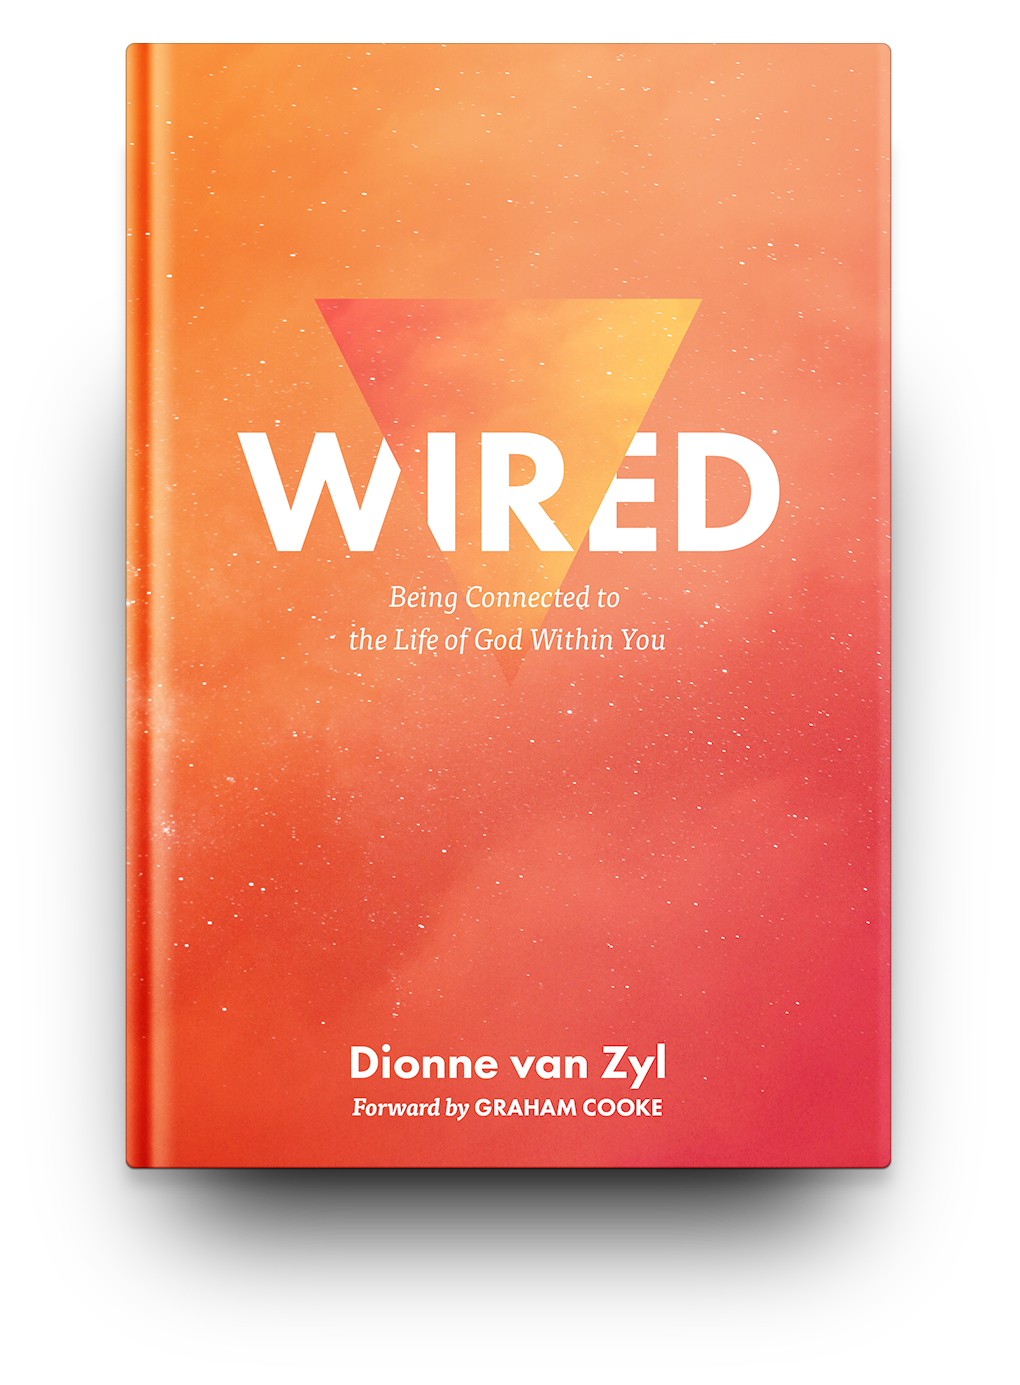 Wired - Connected to the Life of God Within You